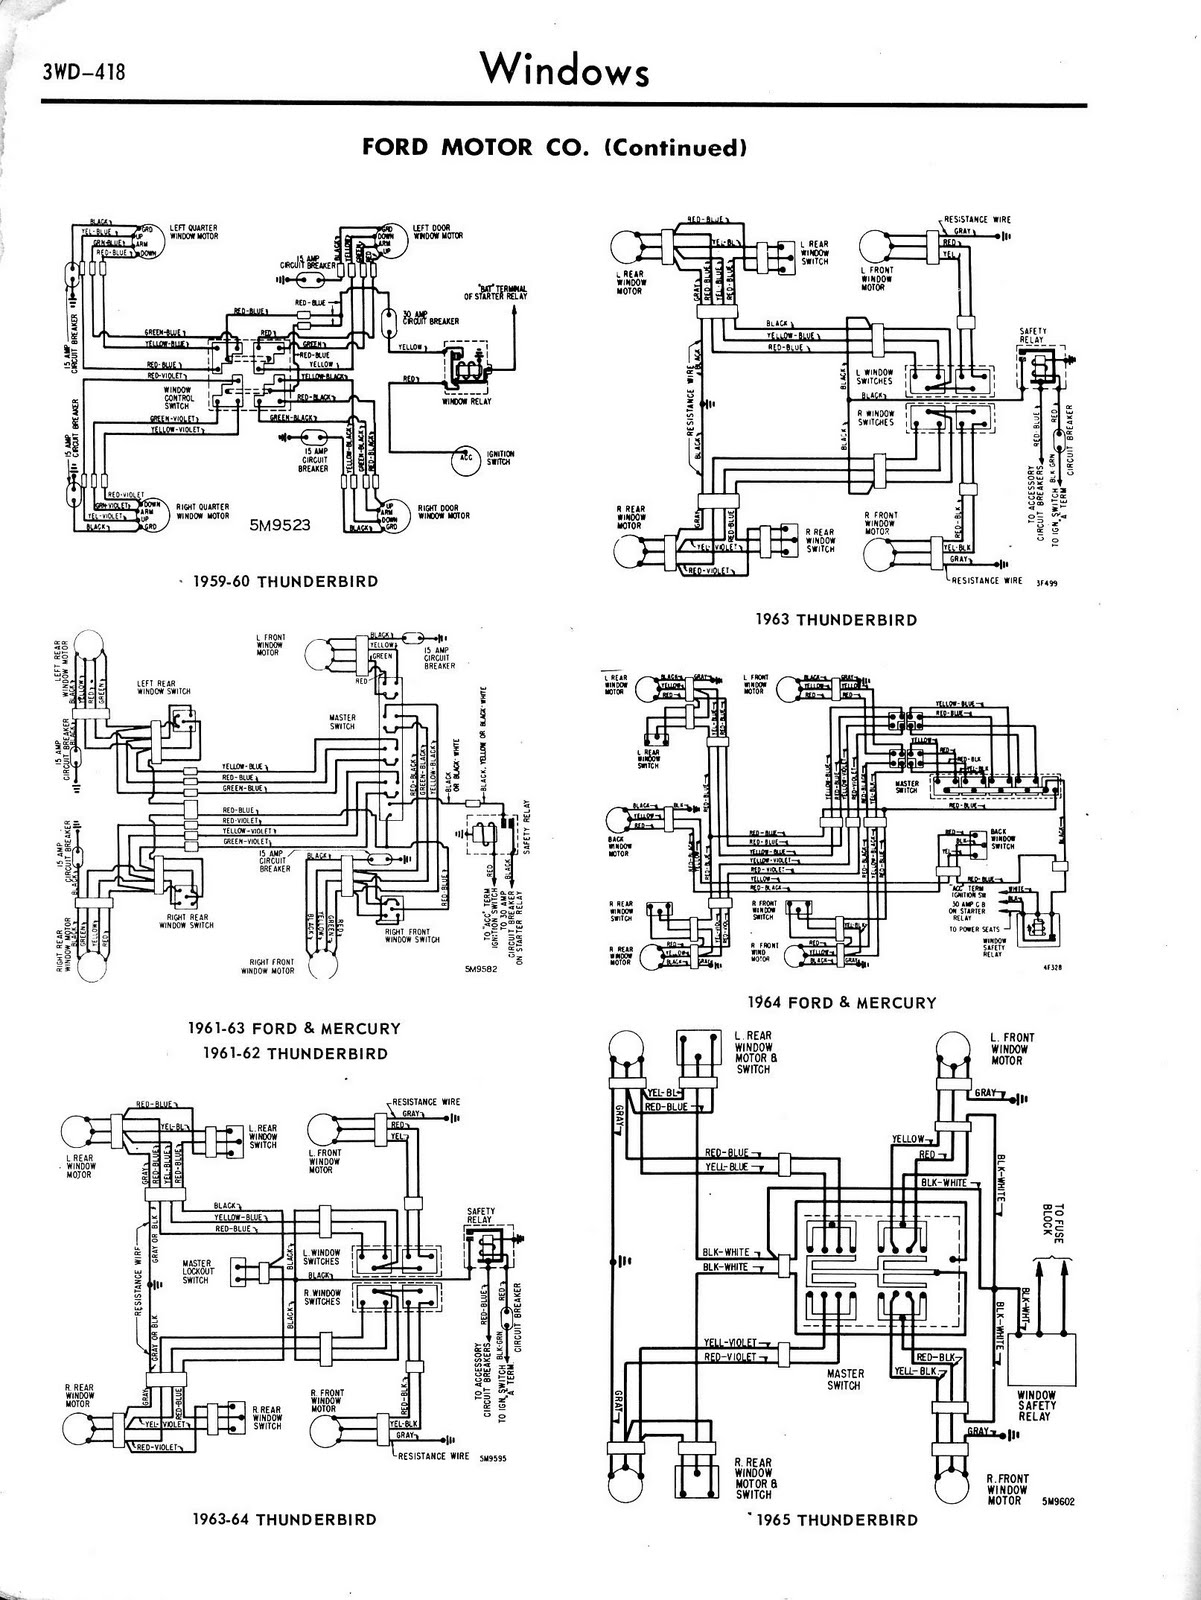 92 Thunderbird Fuse Box Everything About Wiring Diagram 1995 Ford Library Rh 30 Kaufmed De 74